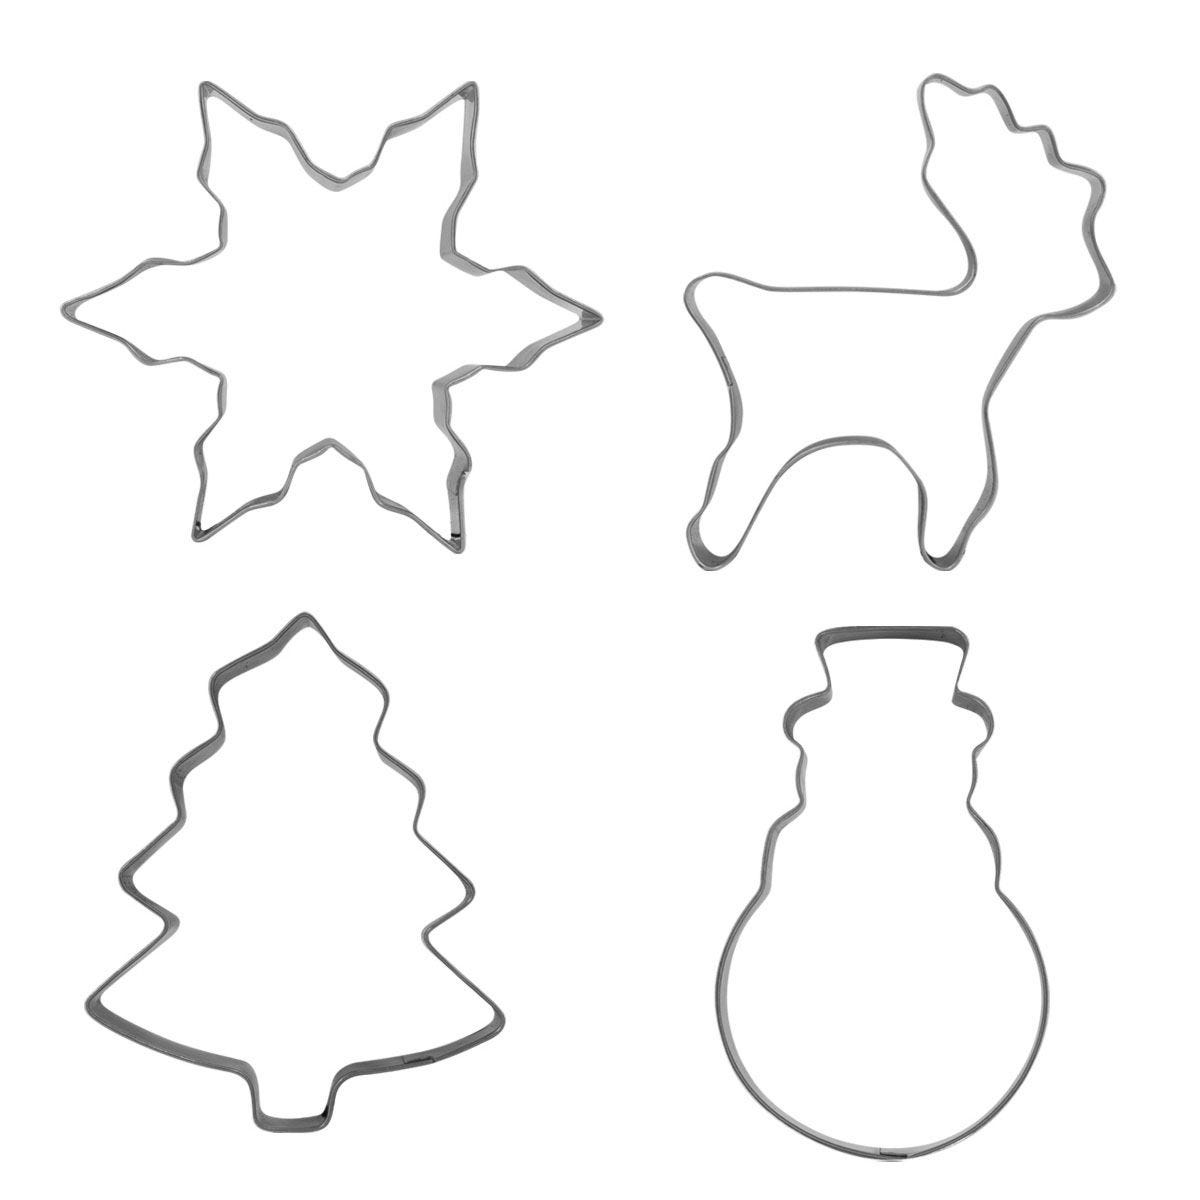 Stainless Steel Cookie Cutters - Set of 4